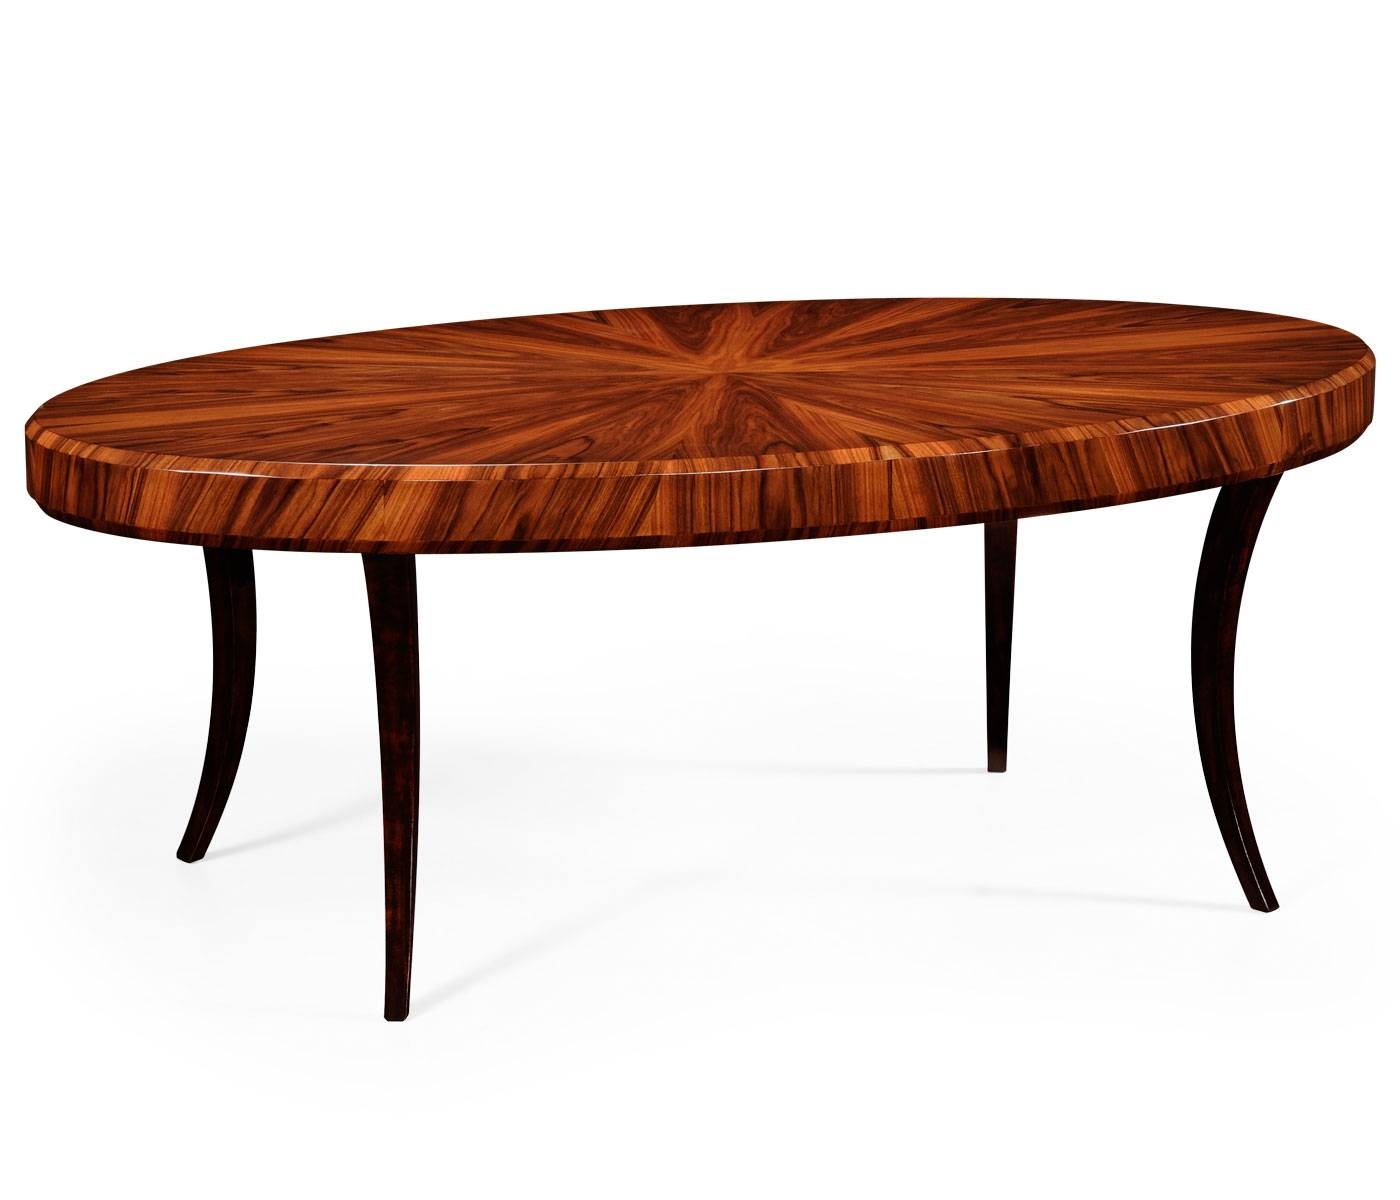 Furniture: Marble Oval Coffee Table | Marble Top Coffee Tables within Oval Wood Coffee Tables (Image 14 of 30)